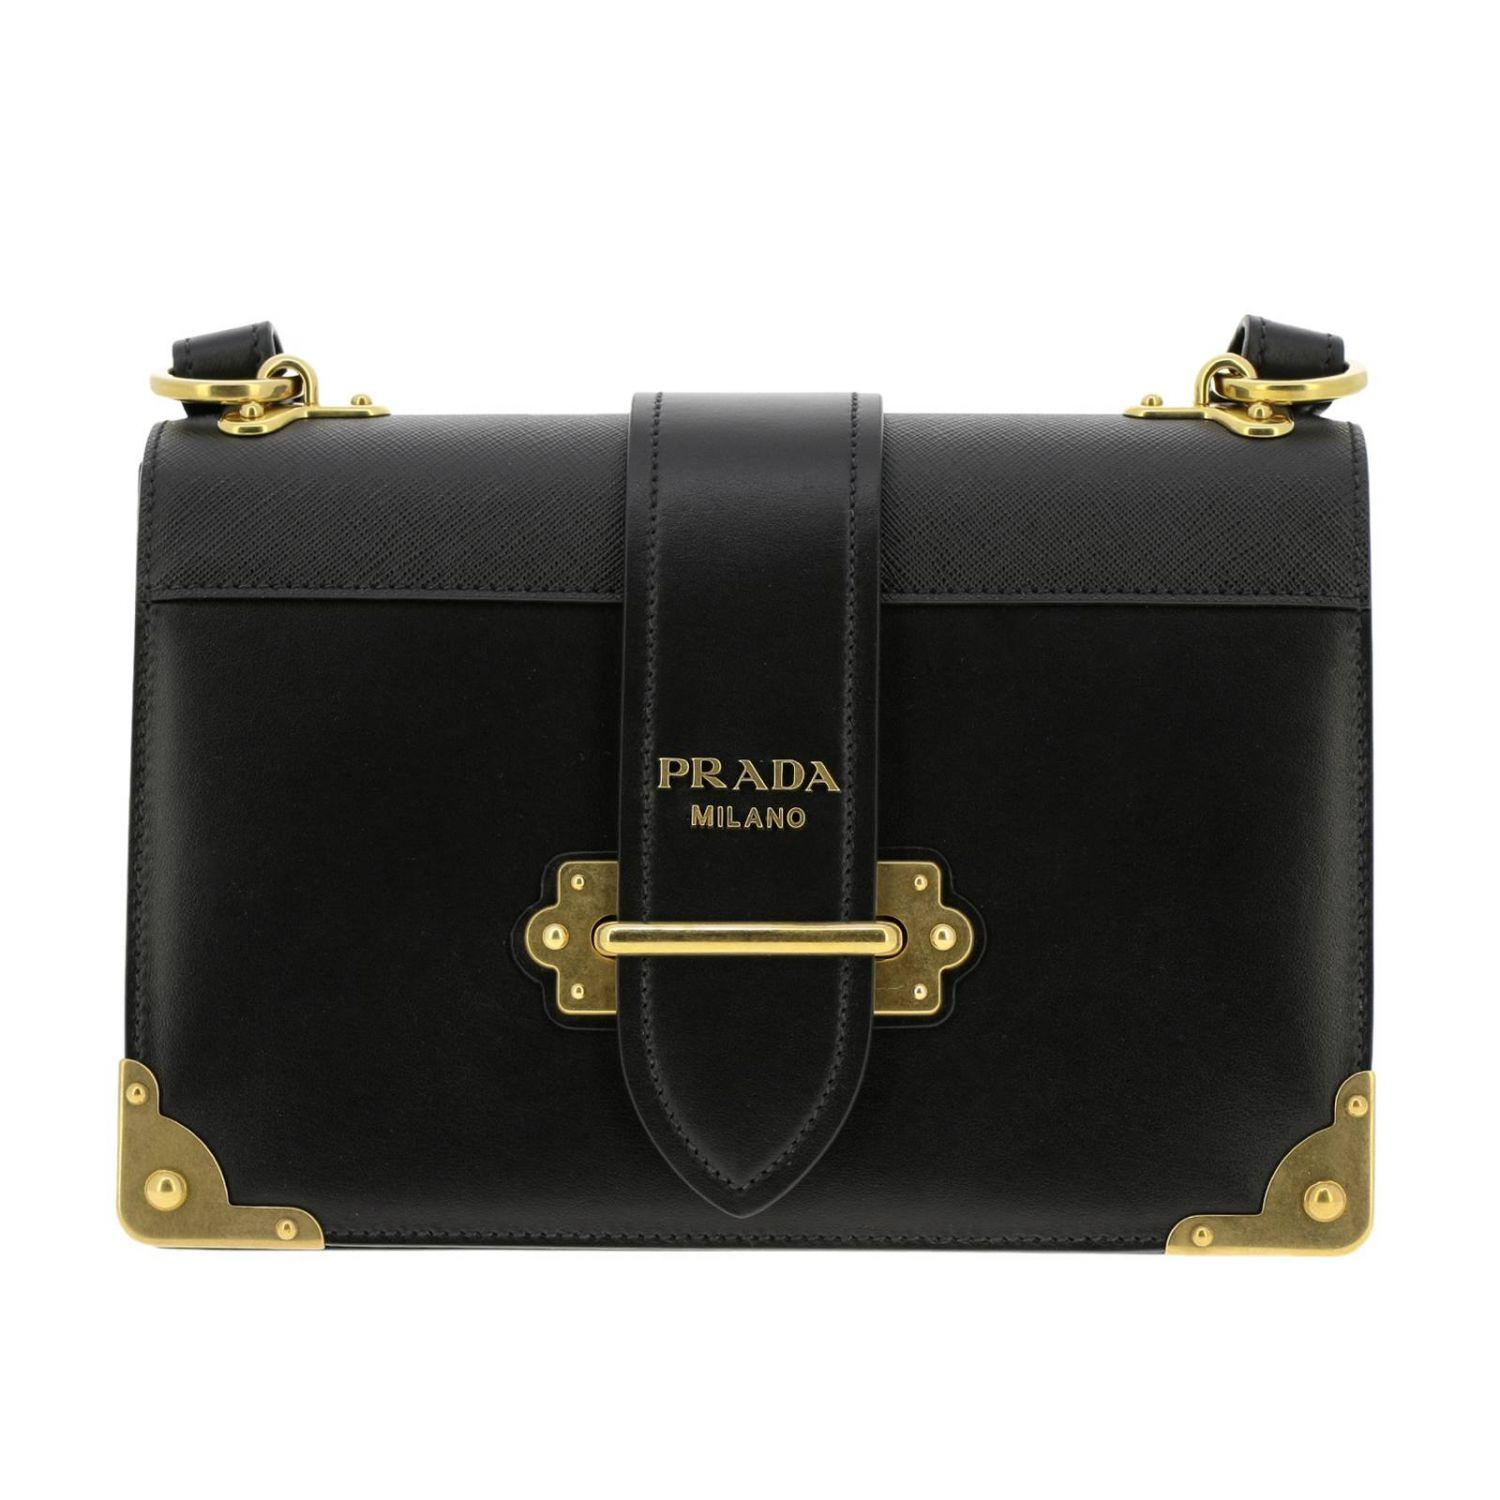 02fdb9d446b1 Prada - Black Cahier Bag In Genuine Smooth And Saffiano Leather With Maxi  Studs And Buckle. View fullscreen